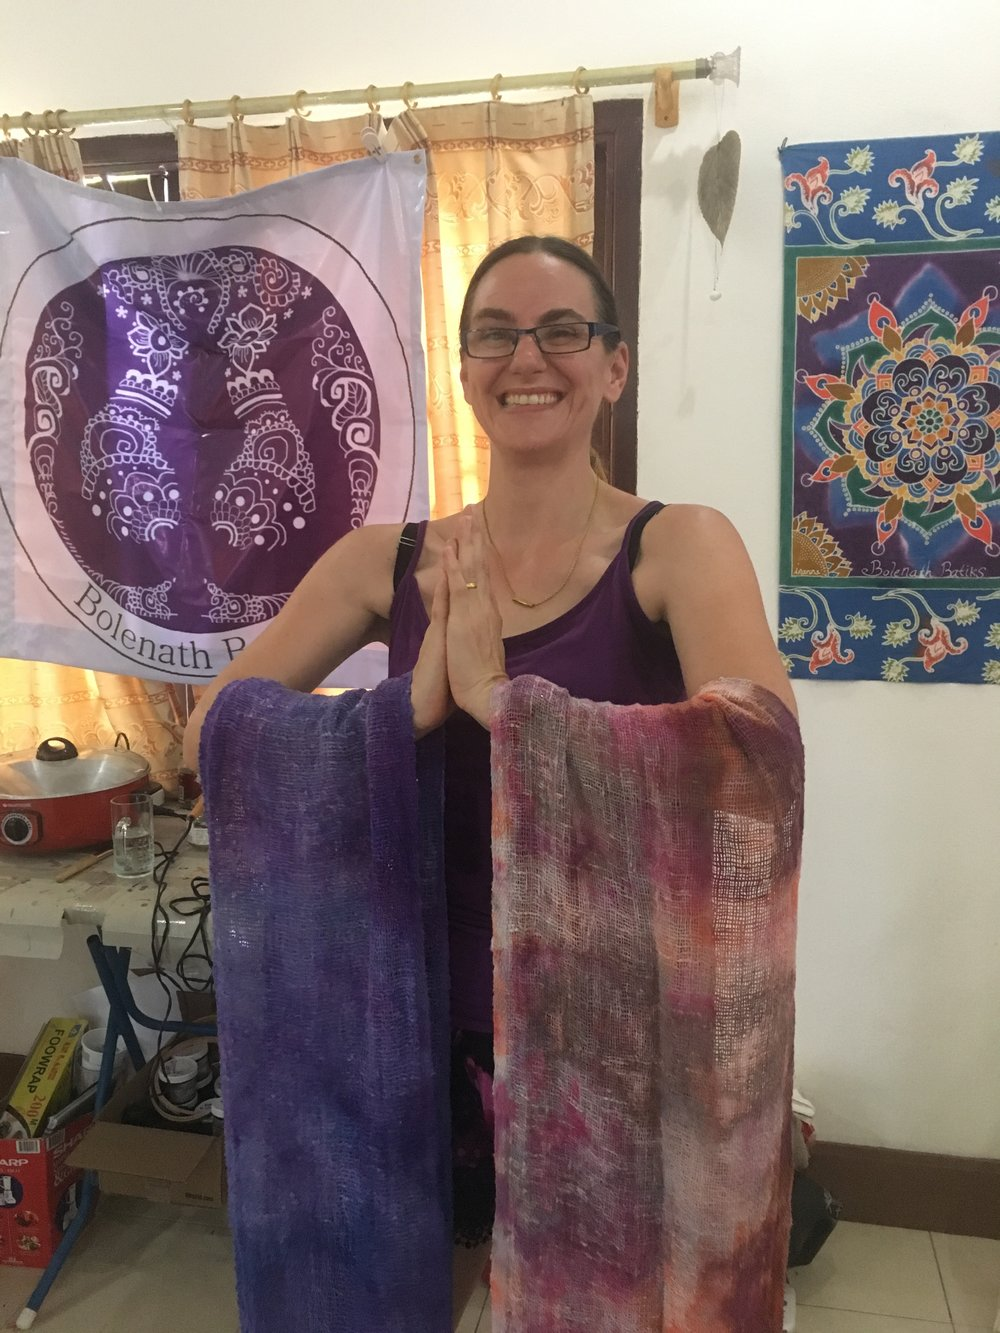 Innana poses with some scarves she's dyed. In the background is the logo for her company Bolenath Batiks and a batik she made in Bali.